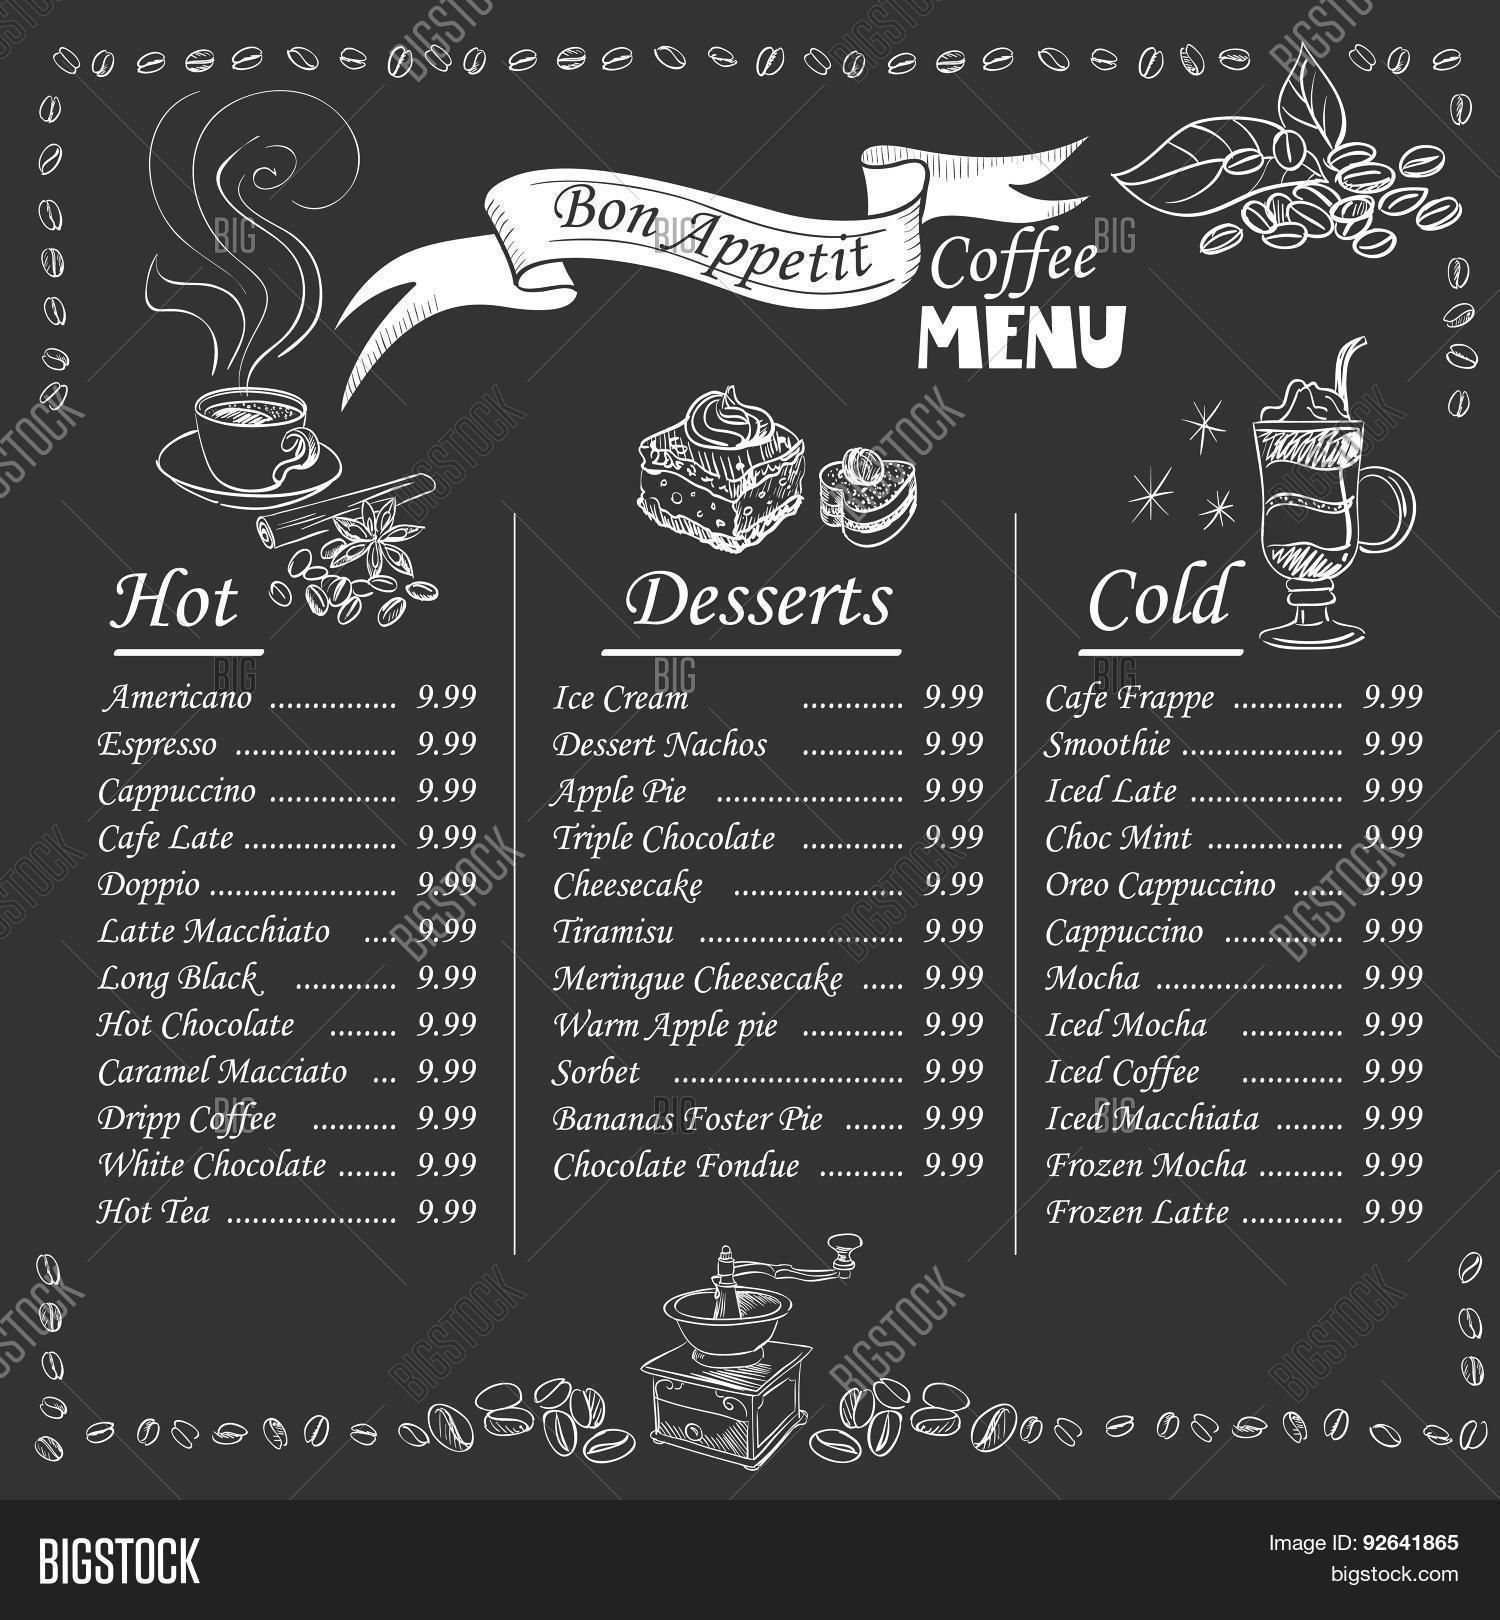 Home Design Ideas Blackboard: Coffee Menu On Chalkboard